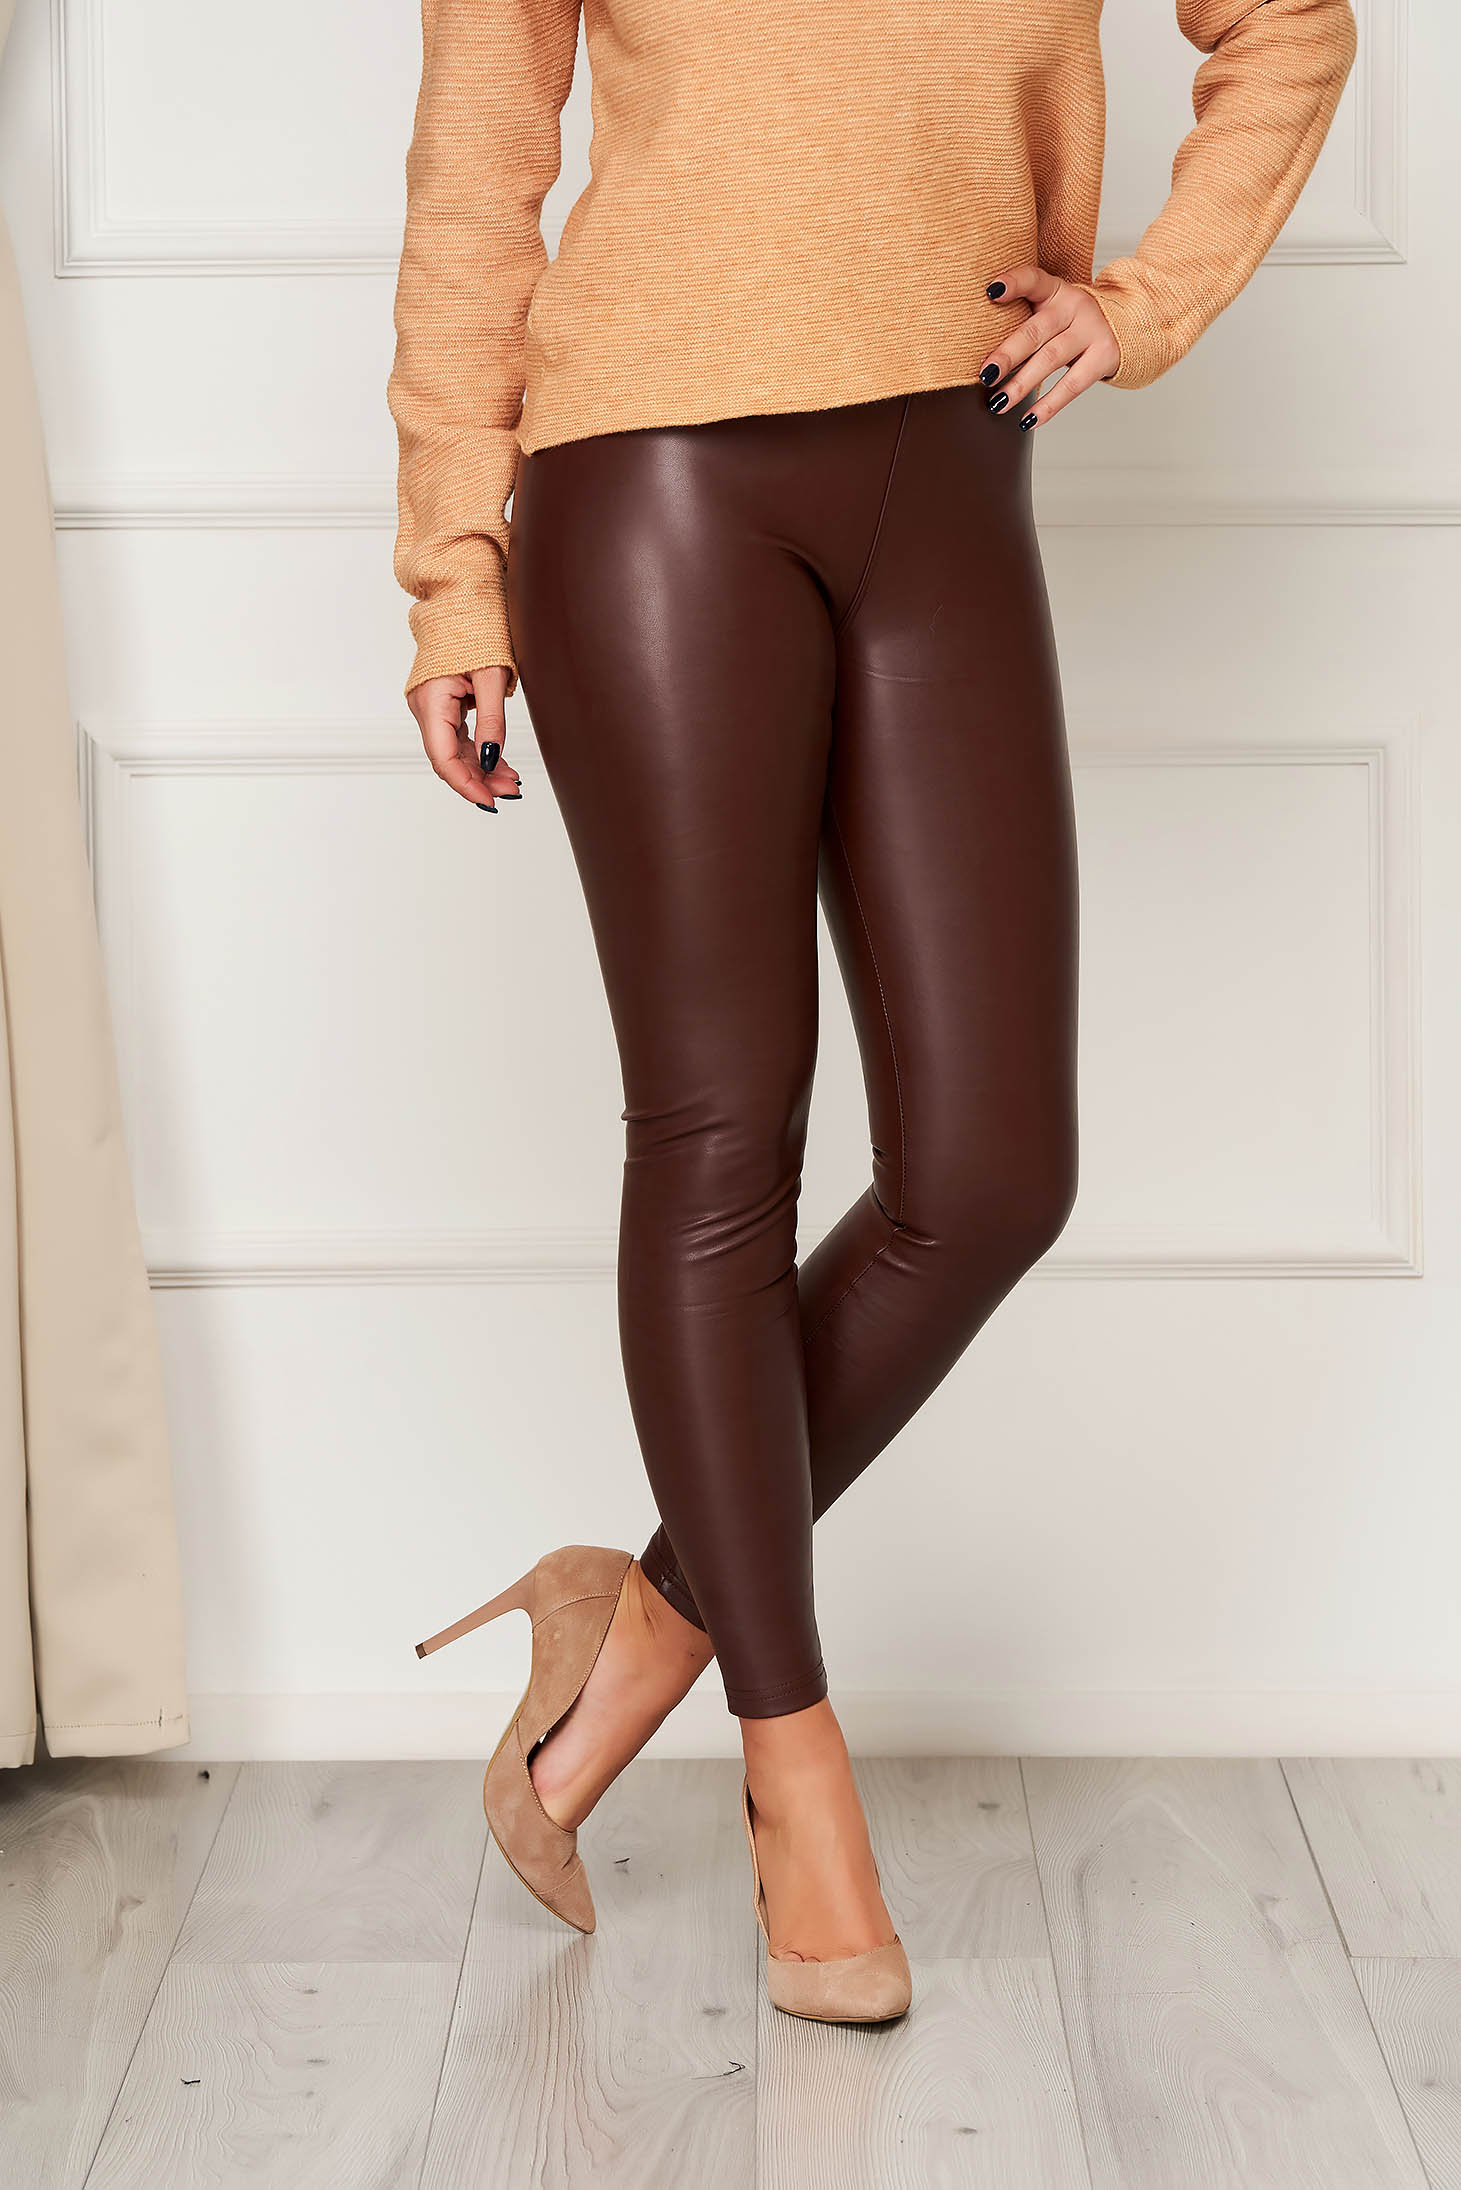 Burgundy tights from ecological leather elastic waist high waisted